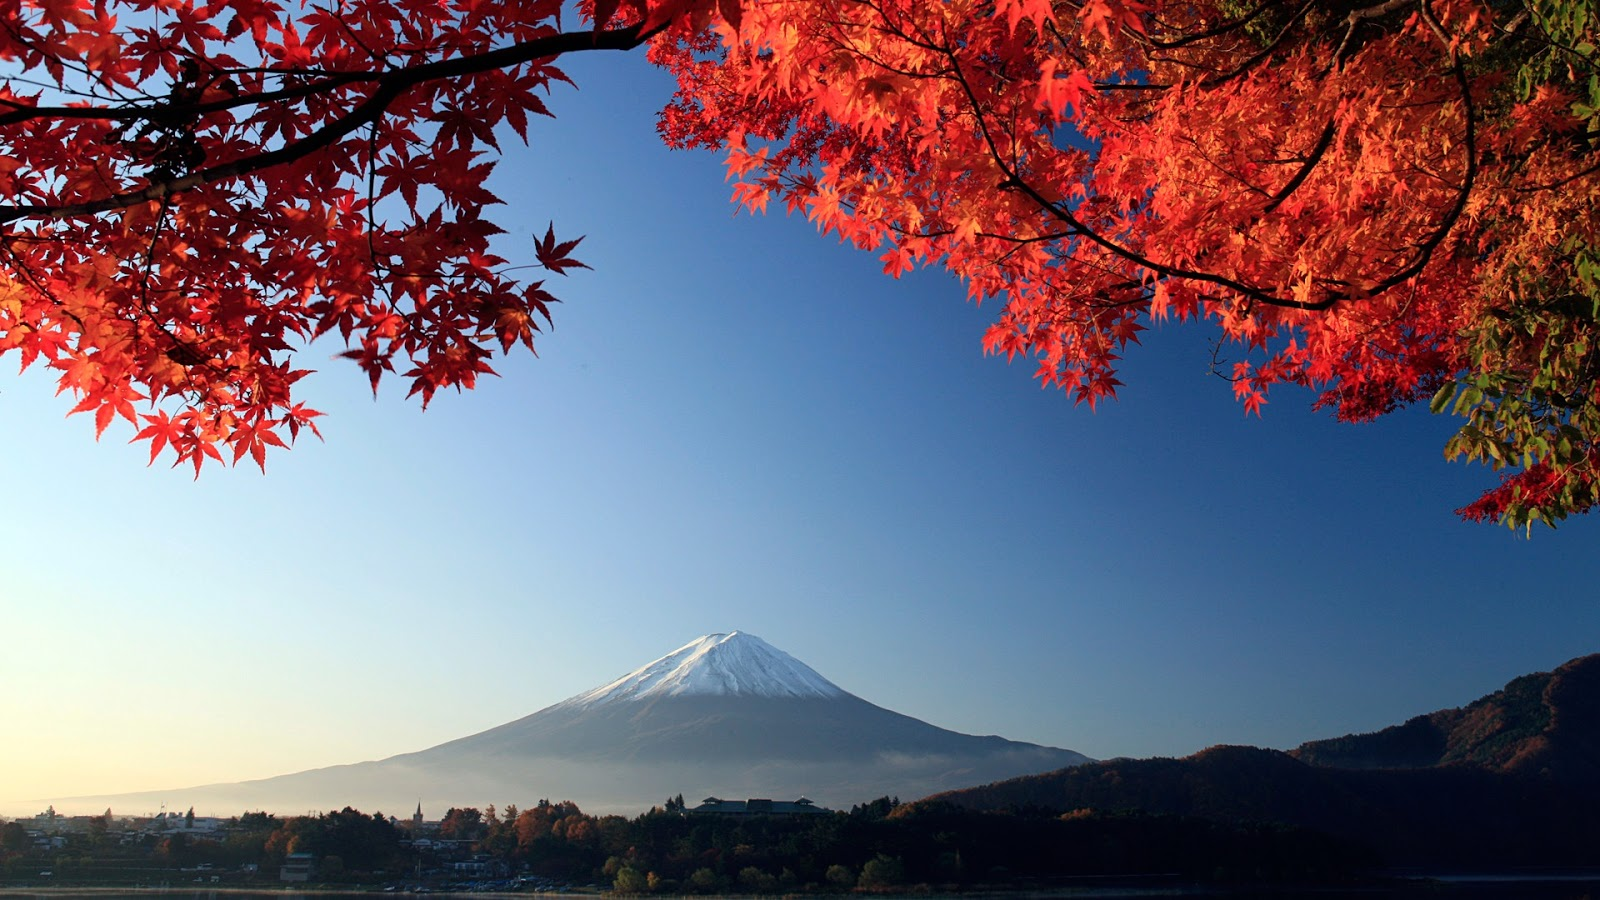 Mount Fuji Autumn maple Japan Android HD Wallpaper